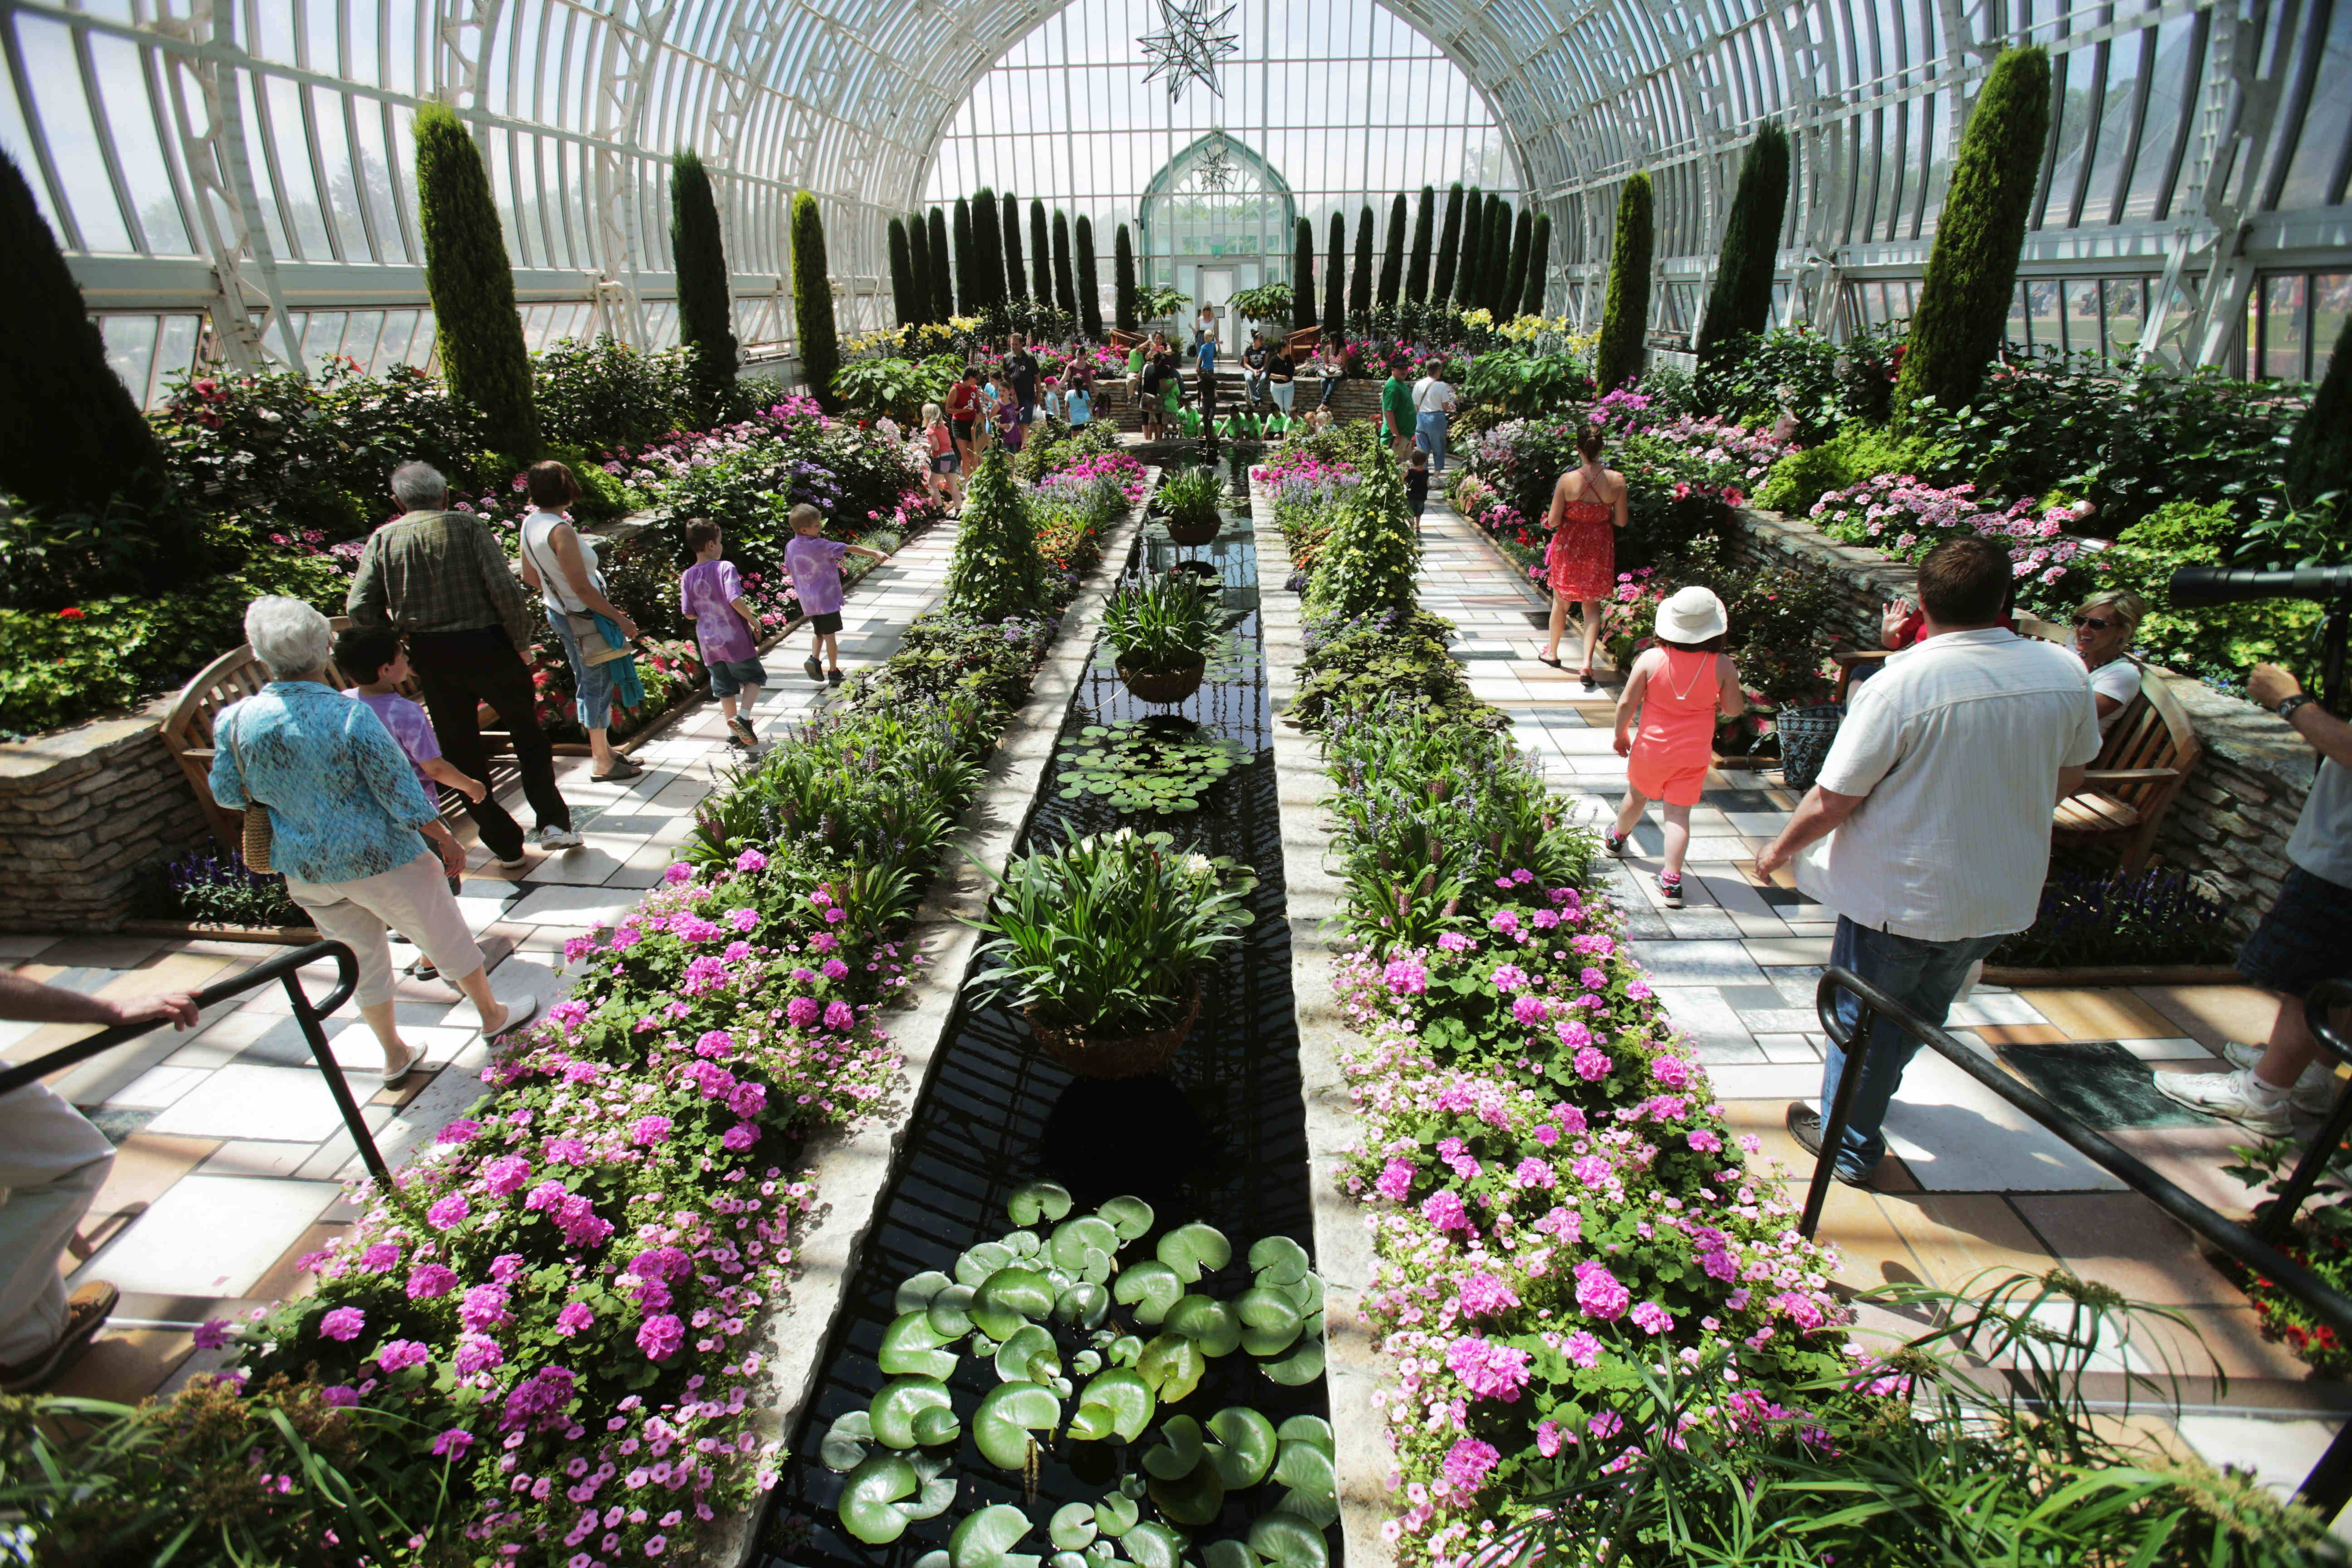 Visitors walk through the glassed-in Conservatory, which shows off tropical and other exotic plants year-round in a variety of indoor and outdoor gardens in St. Paul, Minn.